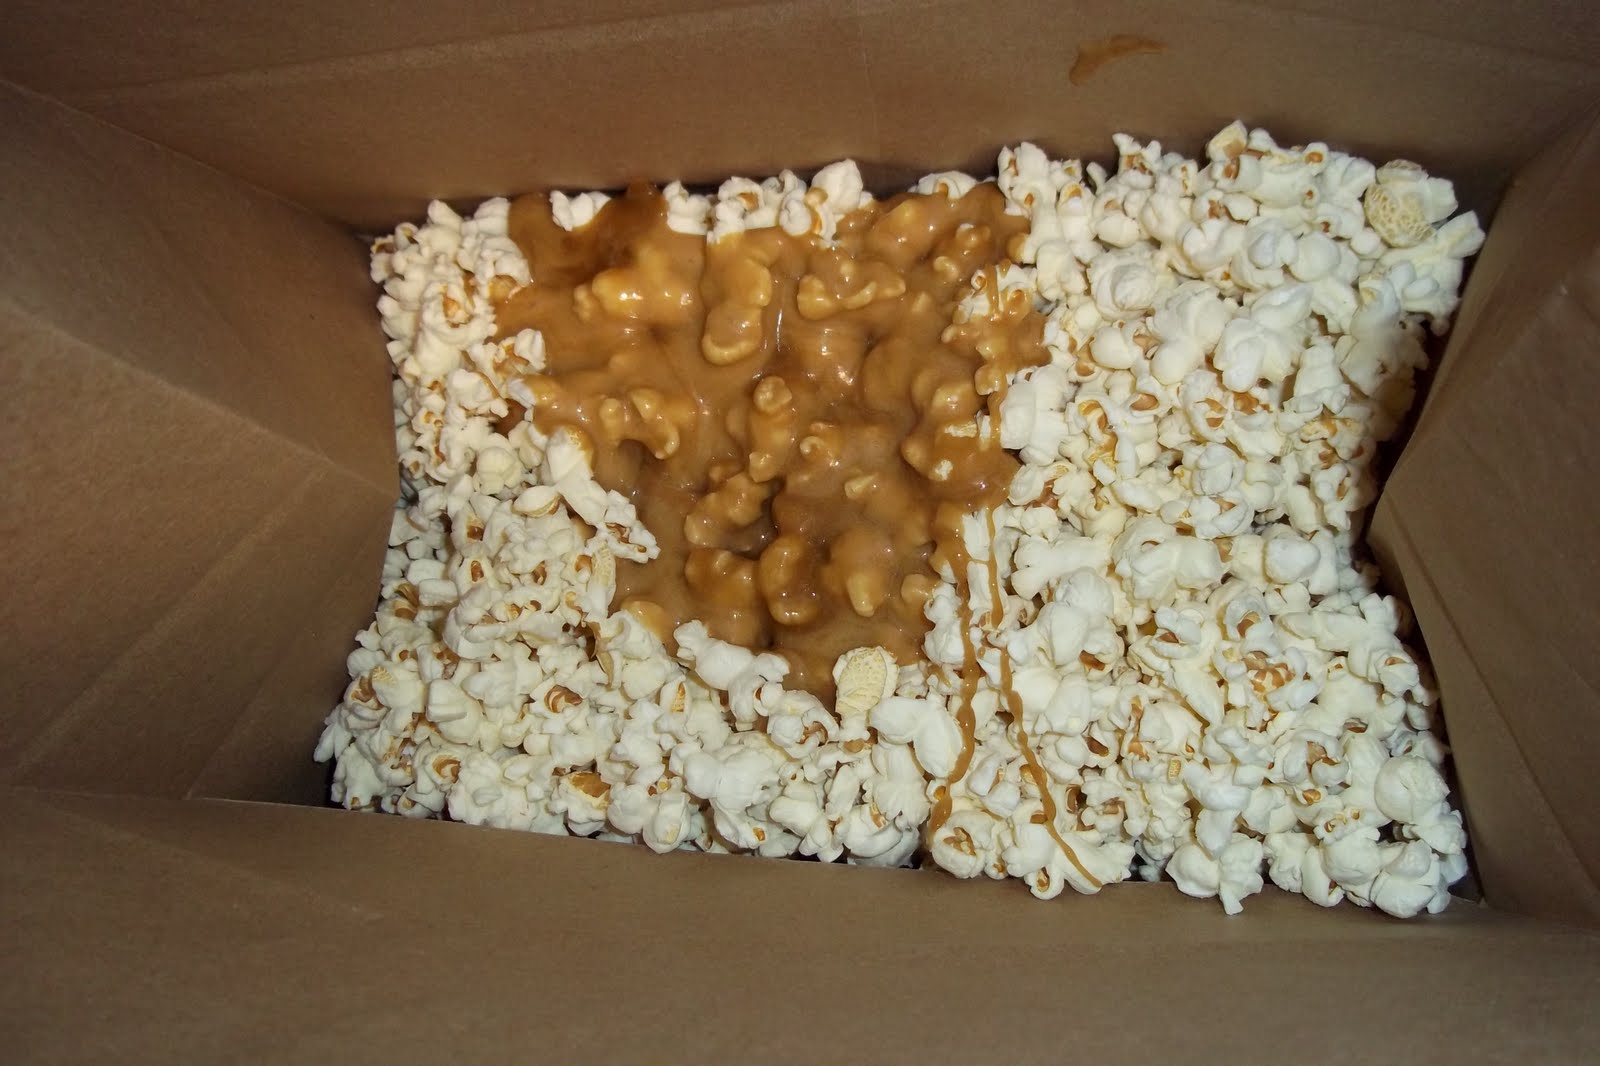 4e2490c92da Pop Popcorn  Pop Popcorn Brown Bag Microwave